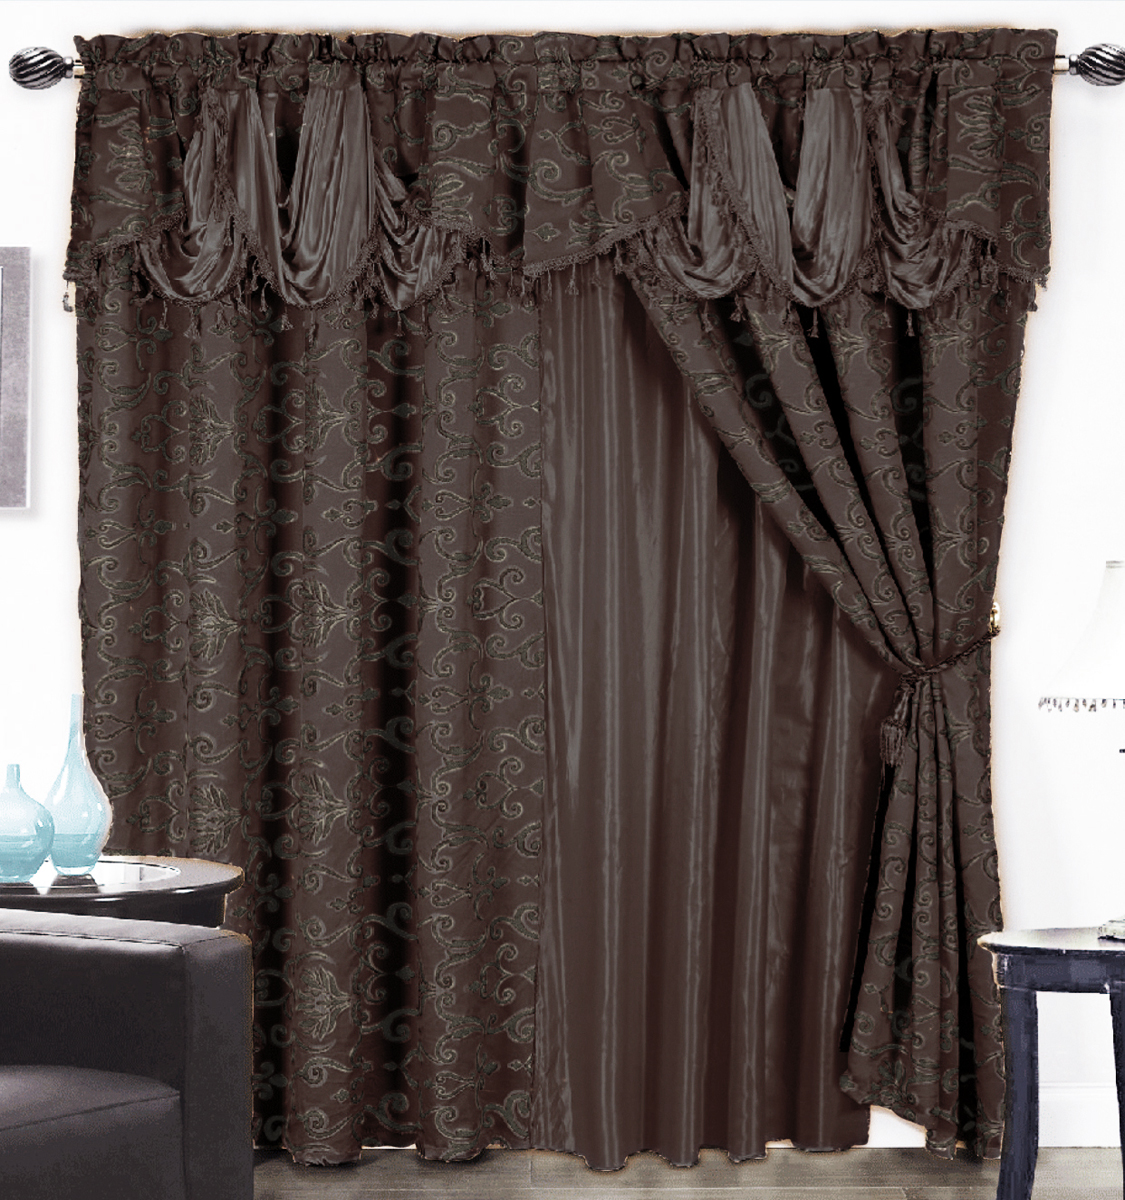 4 Pc Luxurious Satin Jacquard Damask Curtain Set Waterfall Valance Coffee Brown Ebay